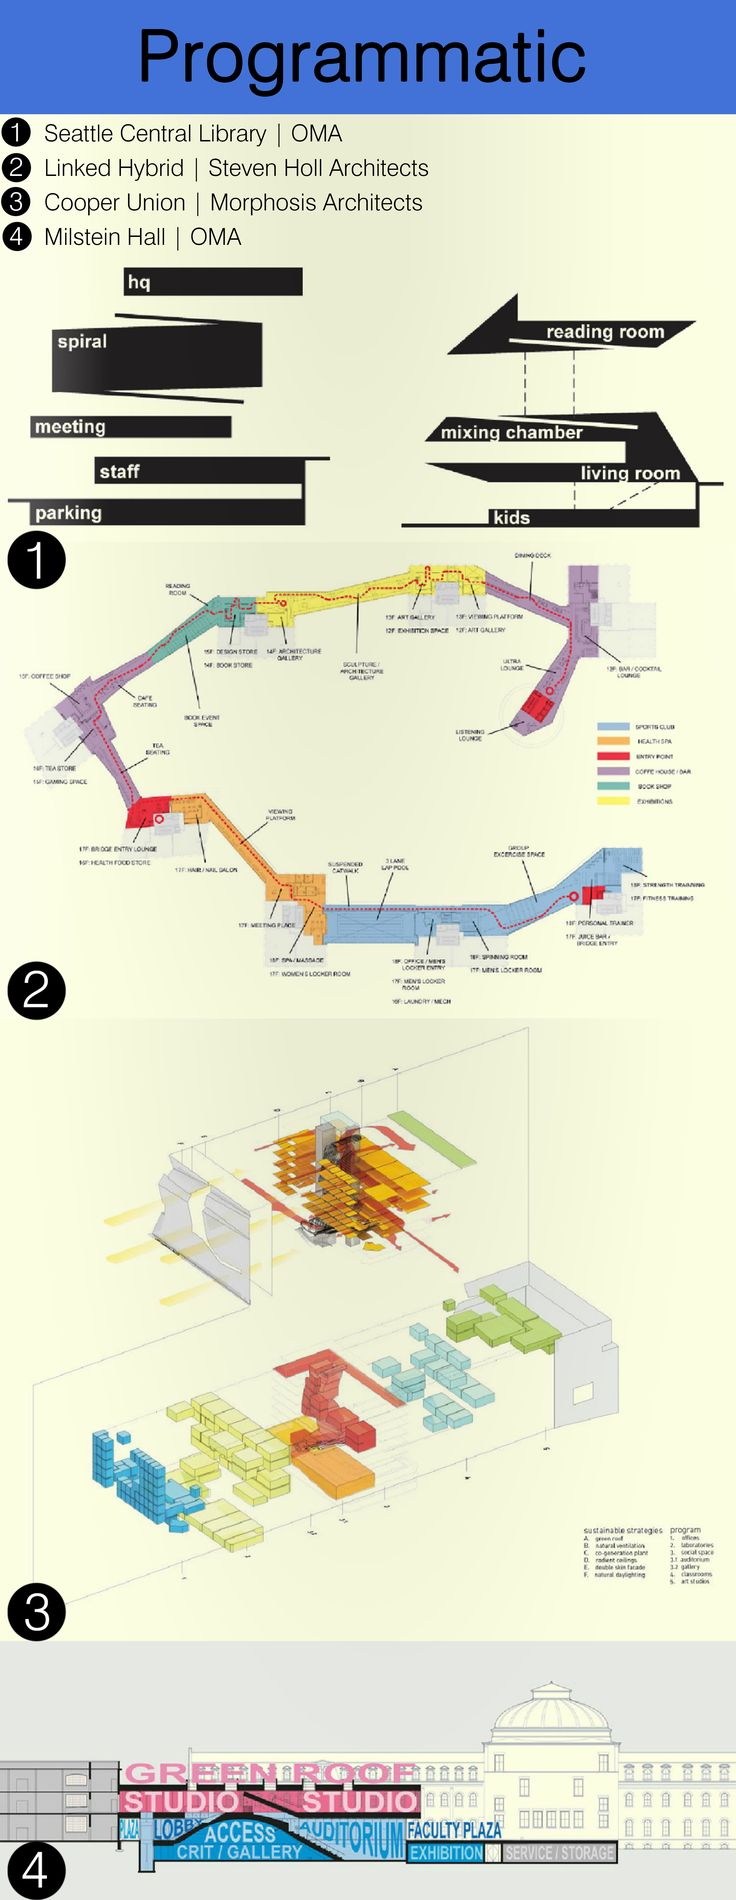 PROGRAMMATIC | Programmatic diagrams relate to the layout of a building in terms…